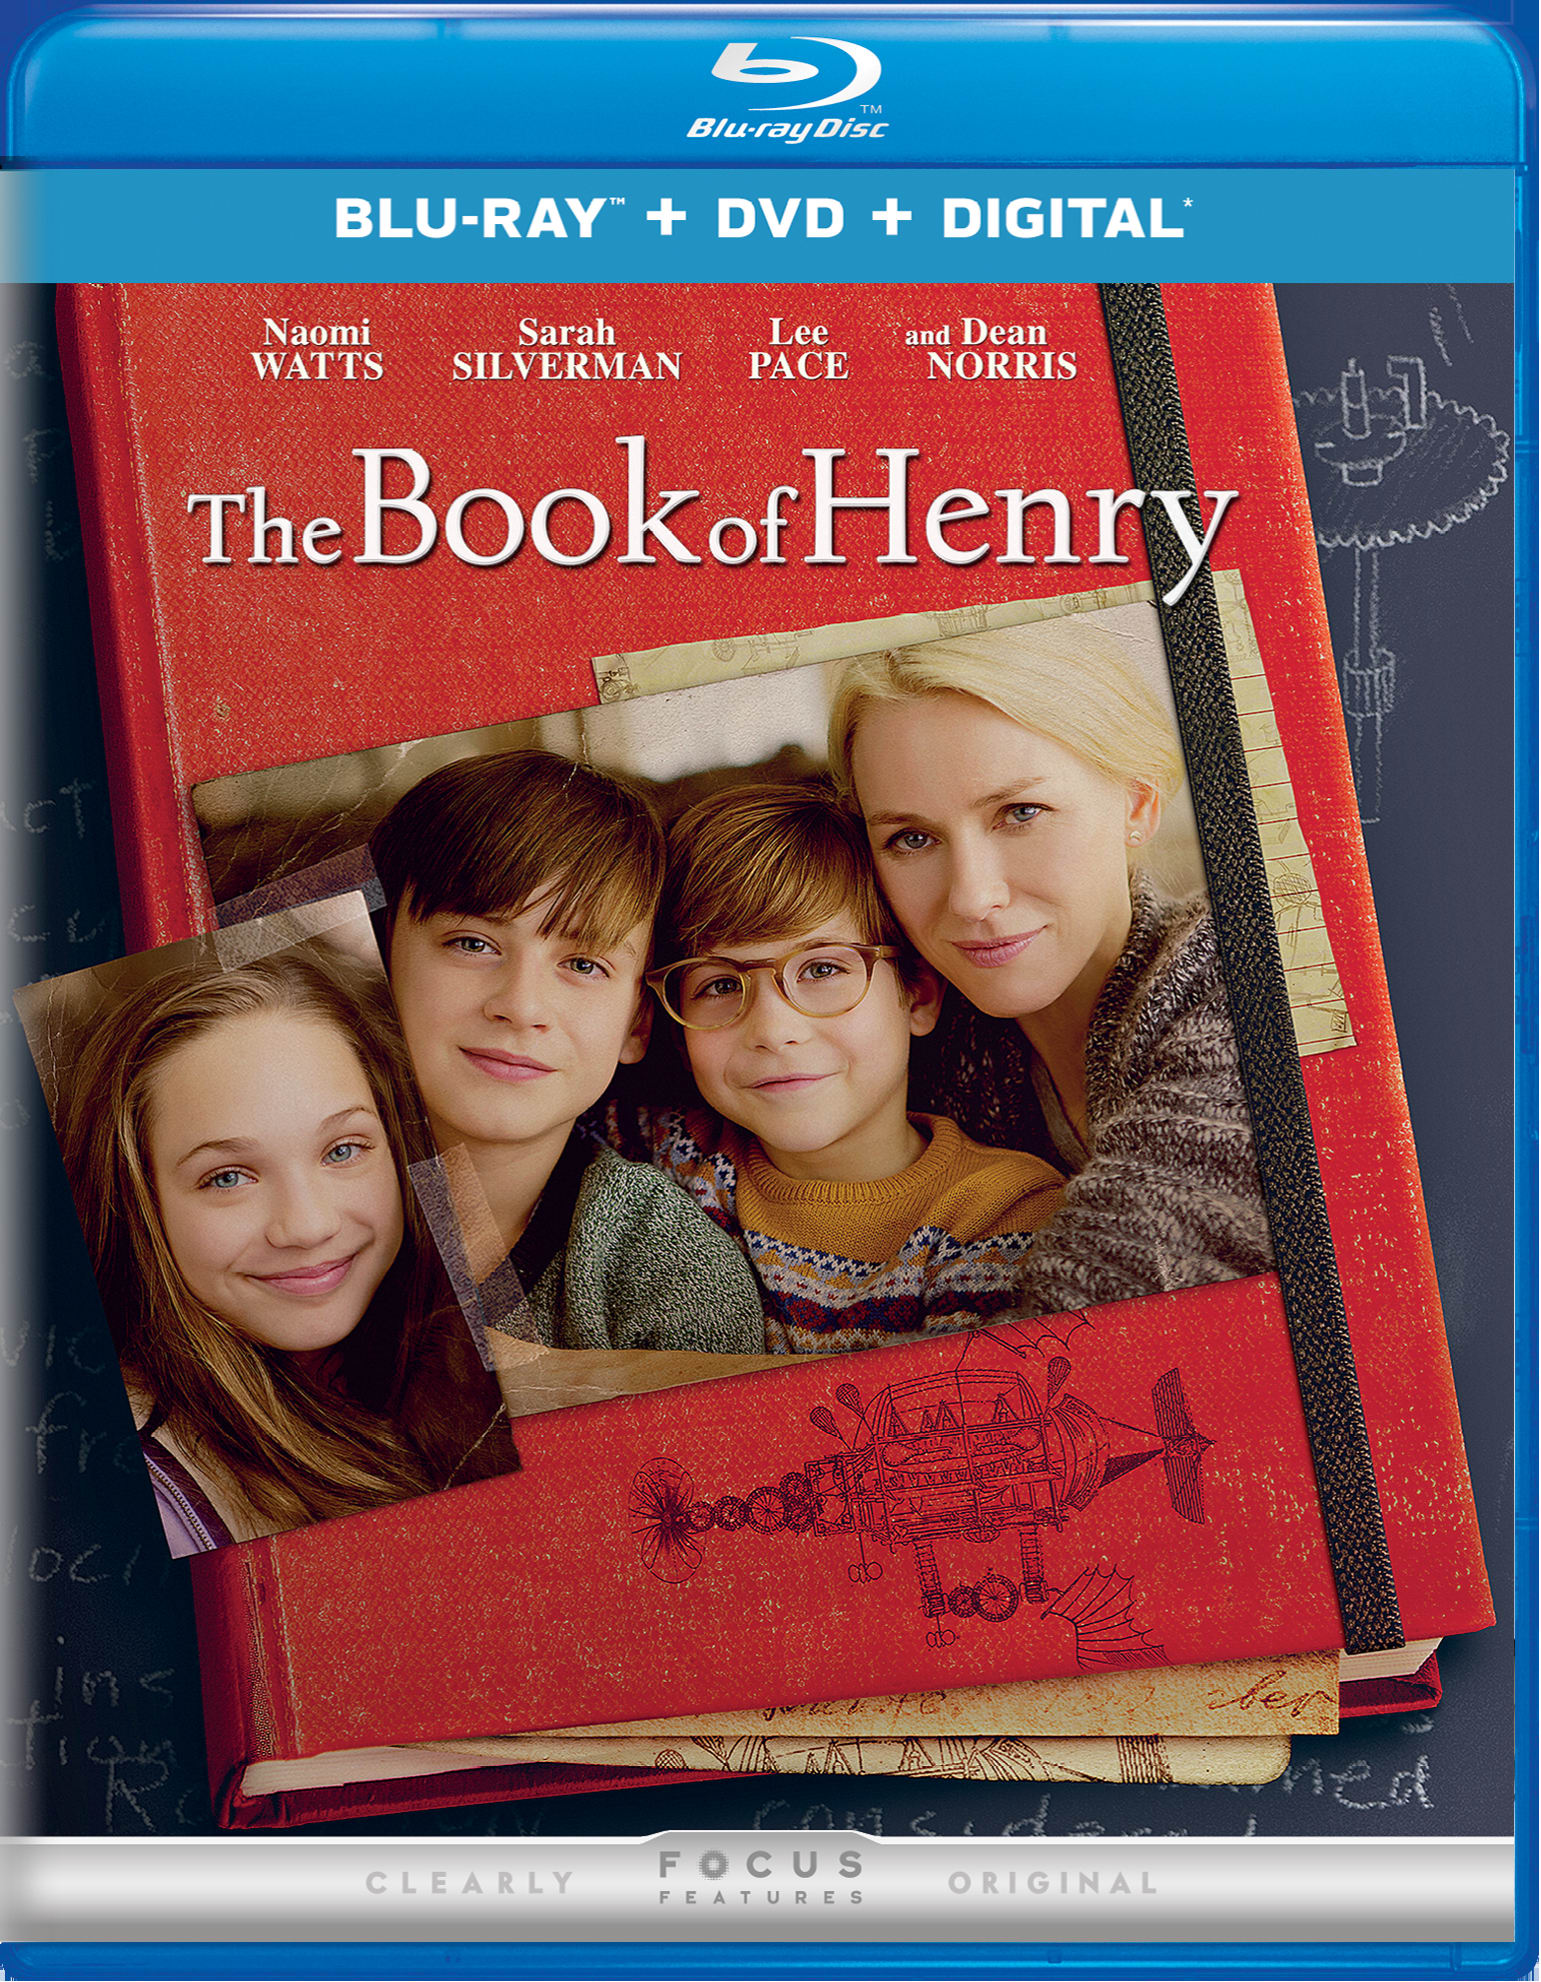 The Book of Henry (DVD + Digital) [Blu-ray]